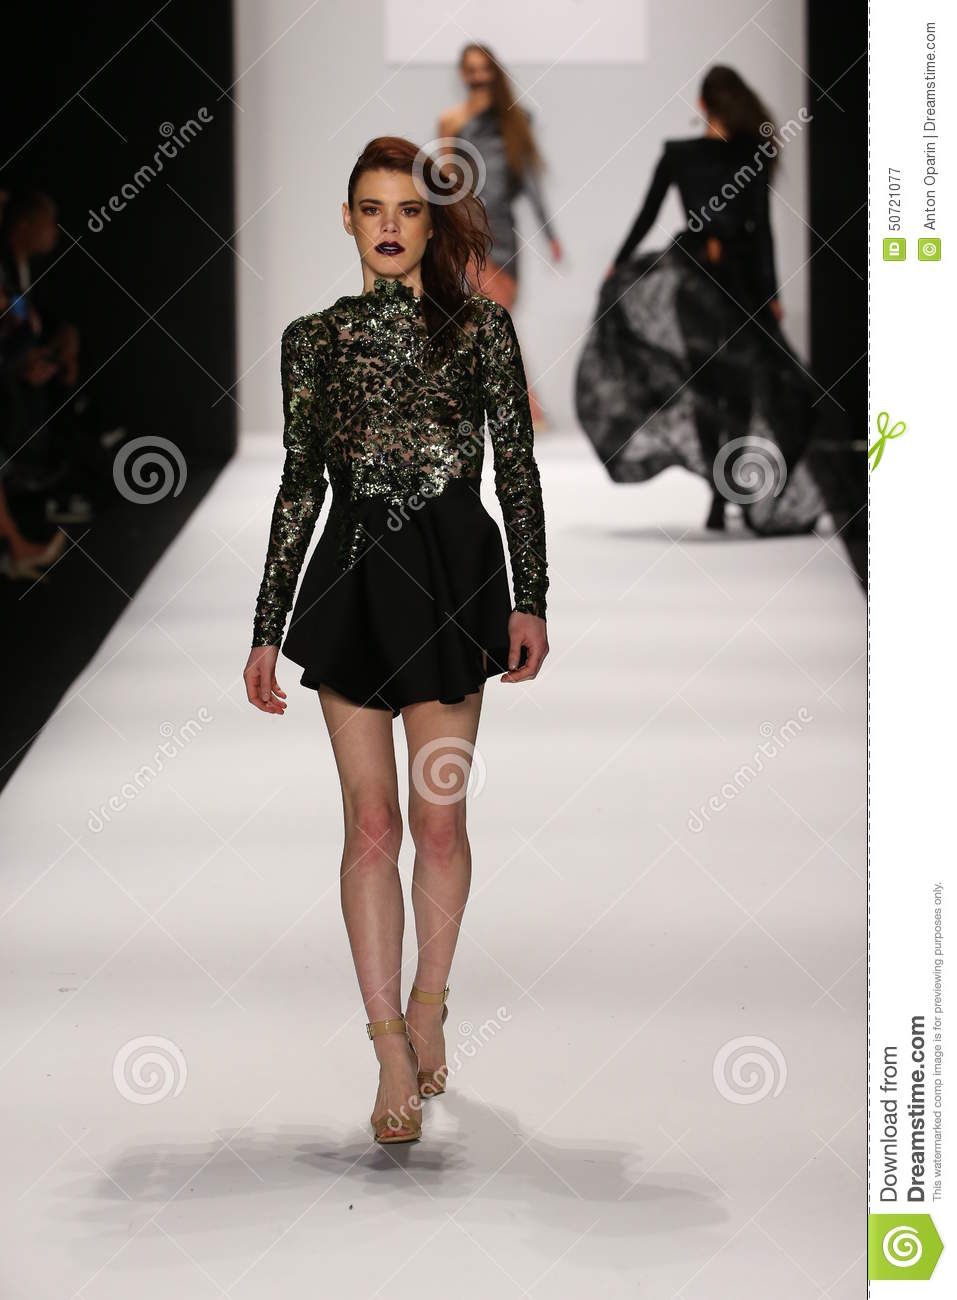 New York Fashion Week February 2015.html